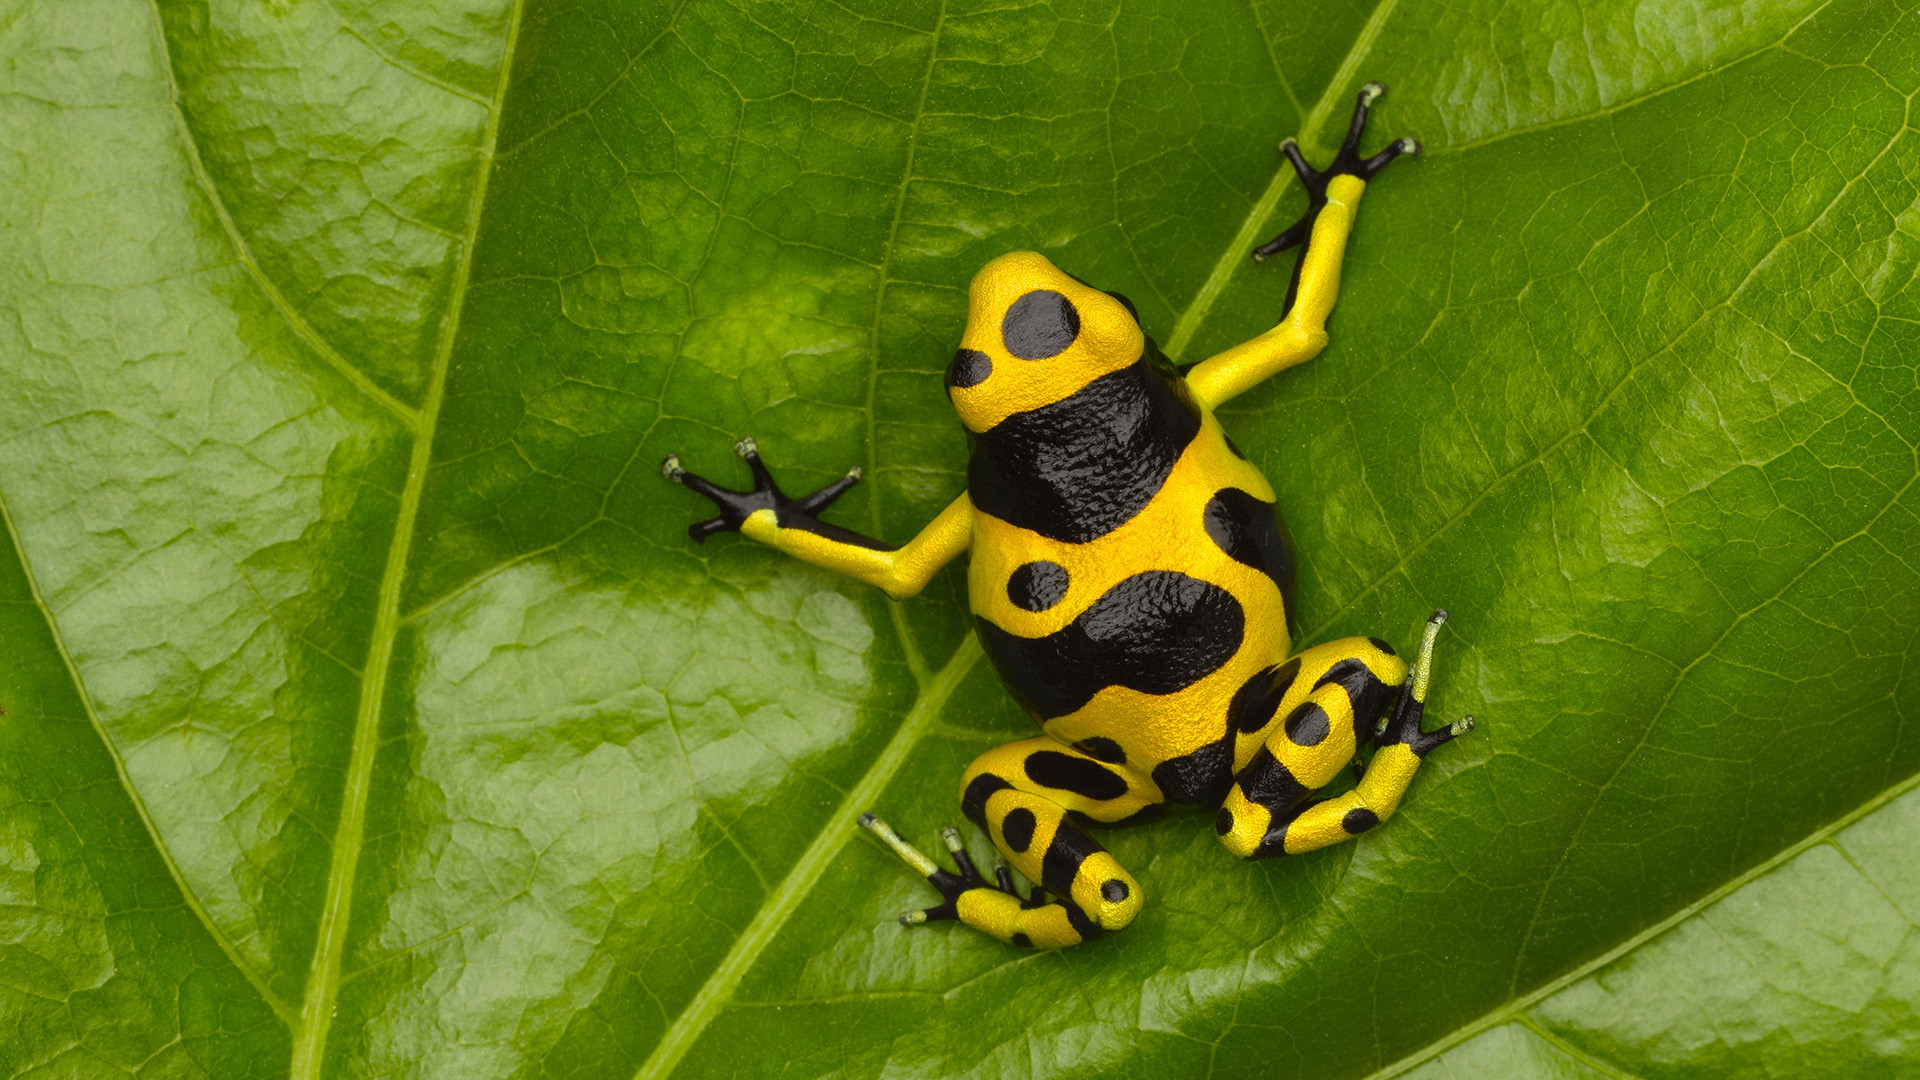 44 Poison dart frog HD Wallpapers   Backgrounds – Wallpaper Abyss – Page 2